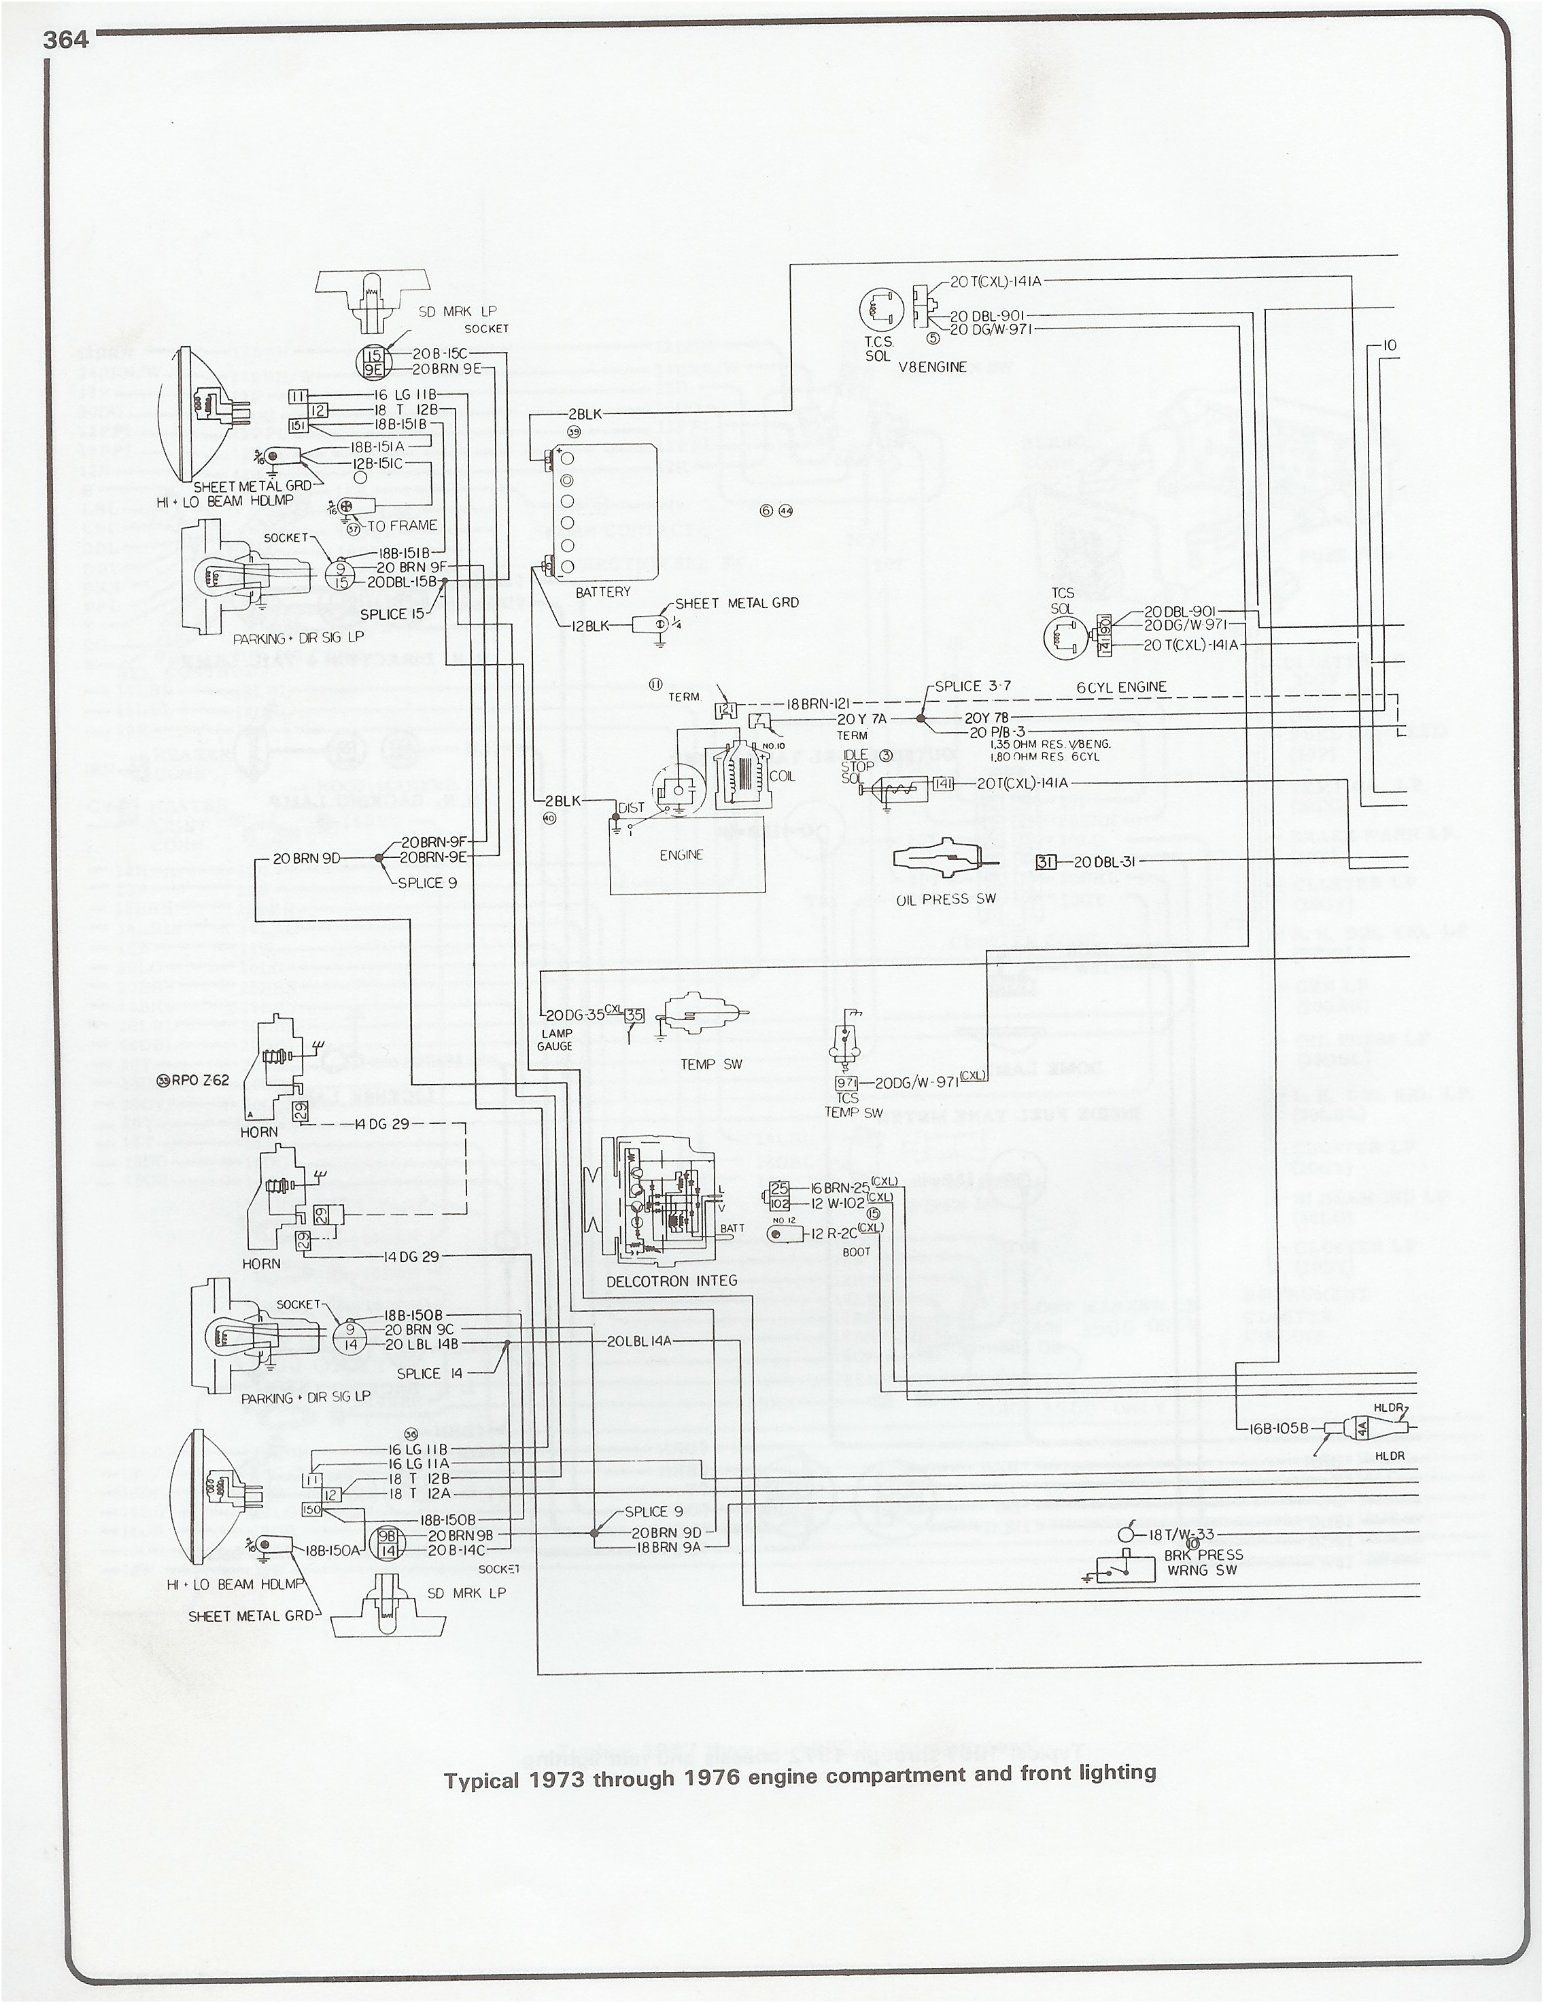 wiring diagram 1973 1976 chevy pickup chevy wiring diagramwiring diagram 1973 1976 chevy pickup chevy wiring diagram